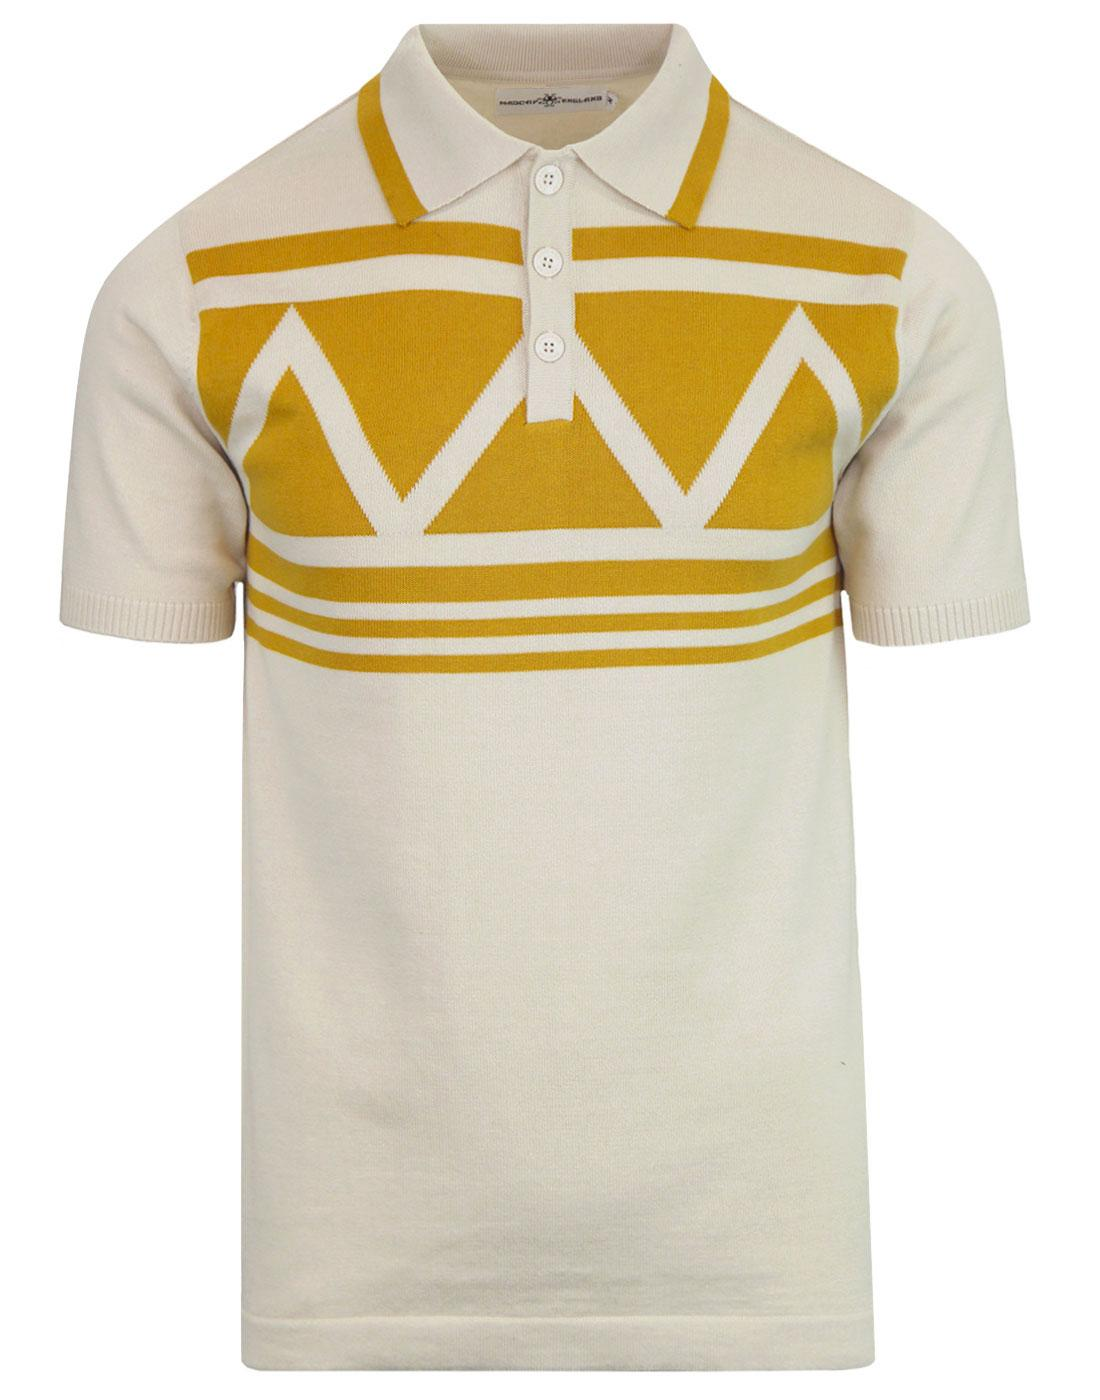 Setting Sun MADCAP ENGLAND Mod Aztec Knit Polo Top